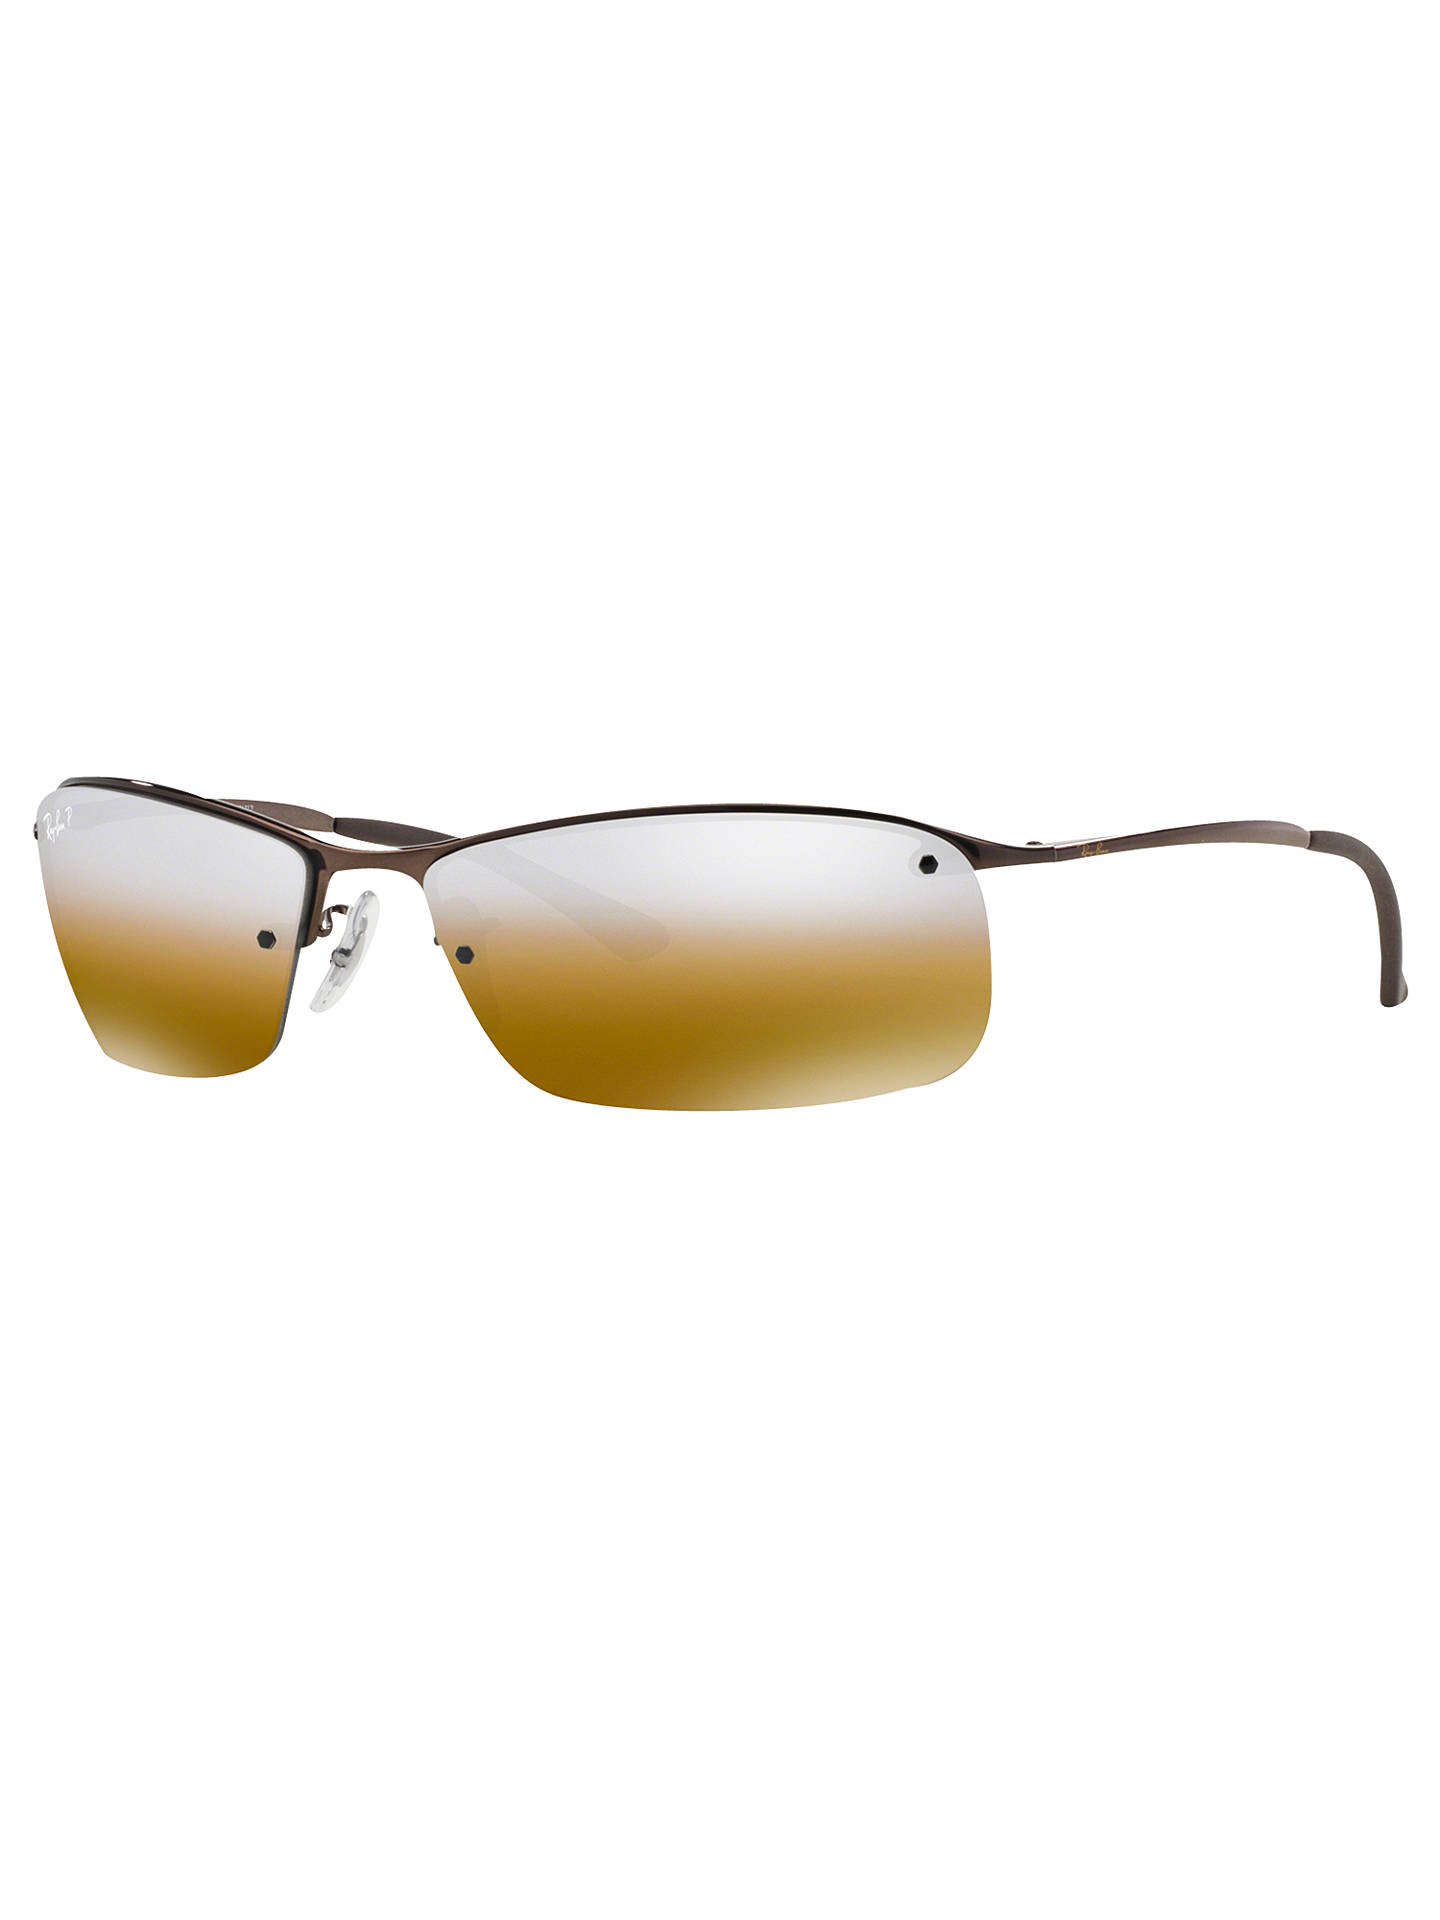 4a85f8b665 BuyRay-Ban RB3183 Polarised Rectangular Sunglasses